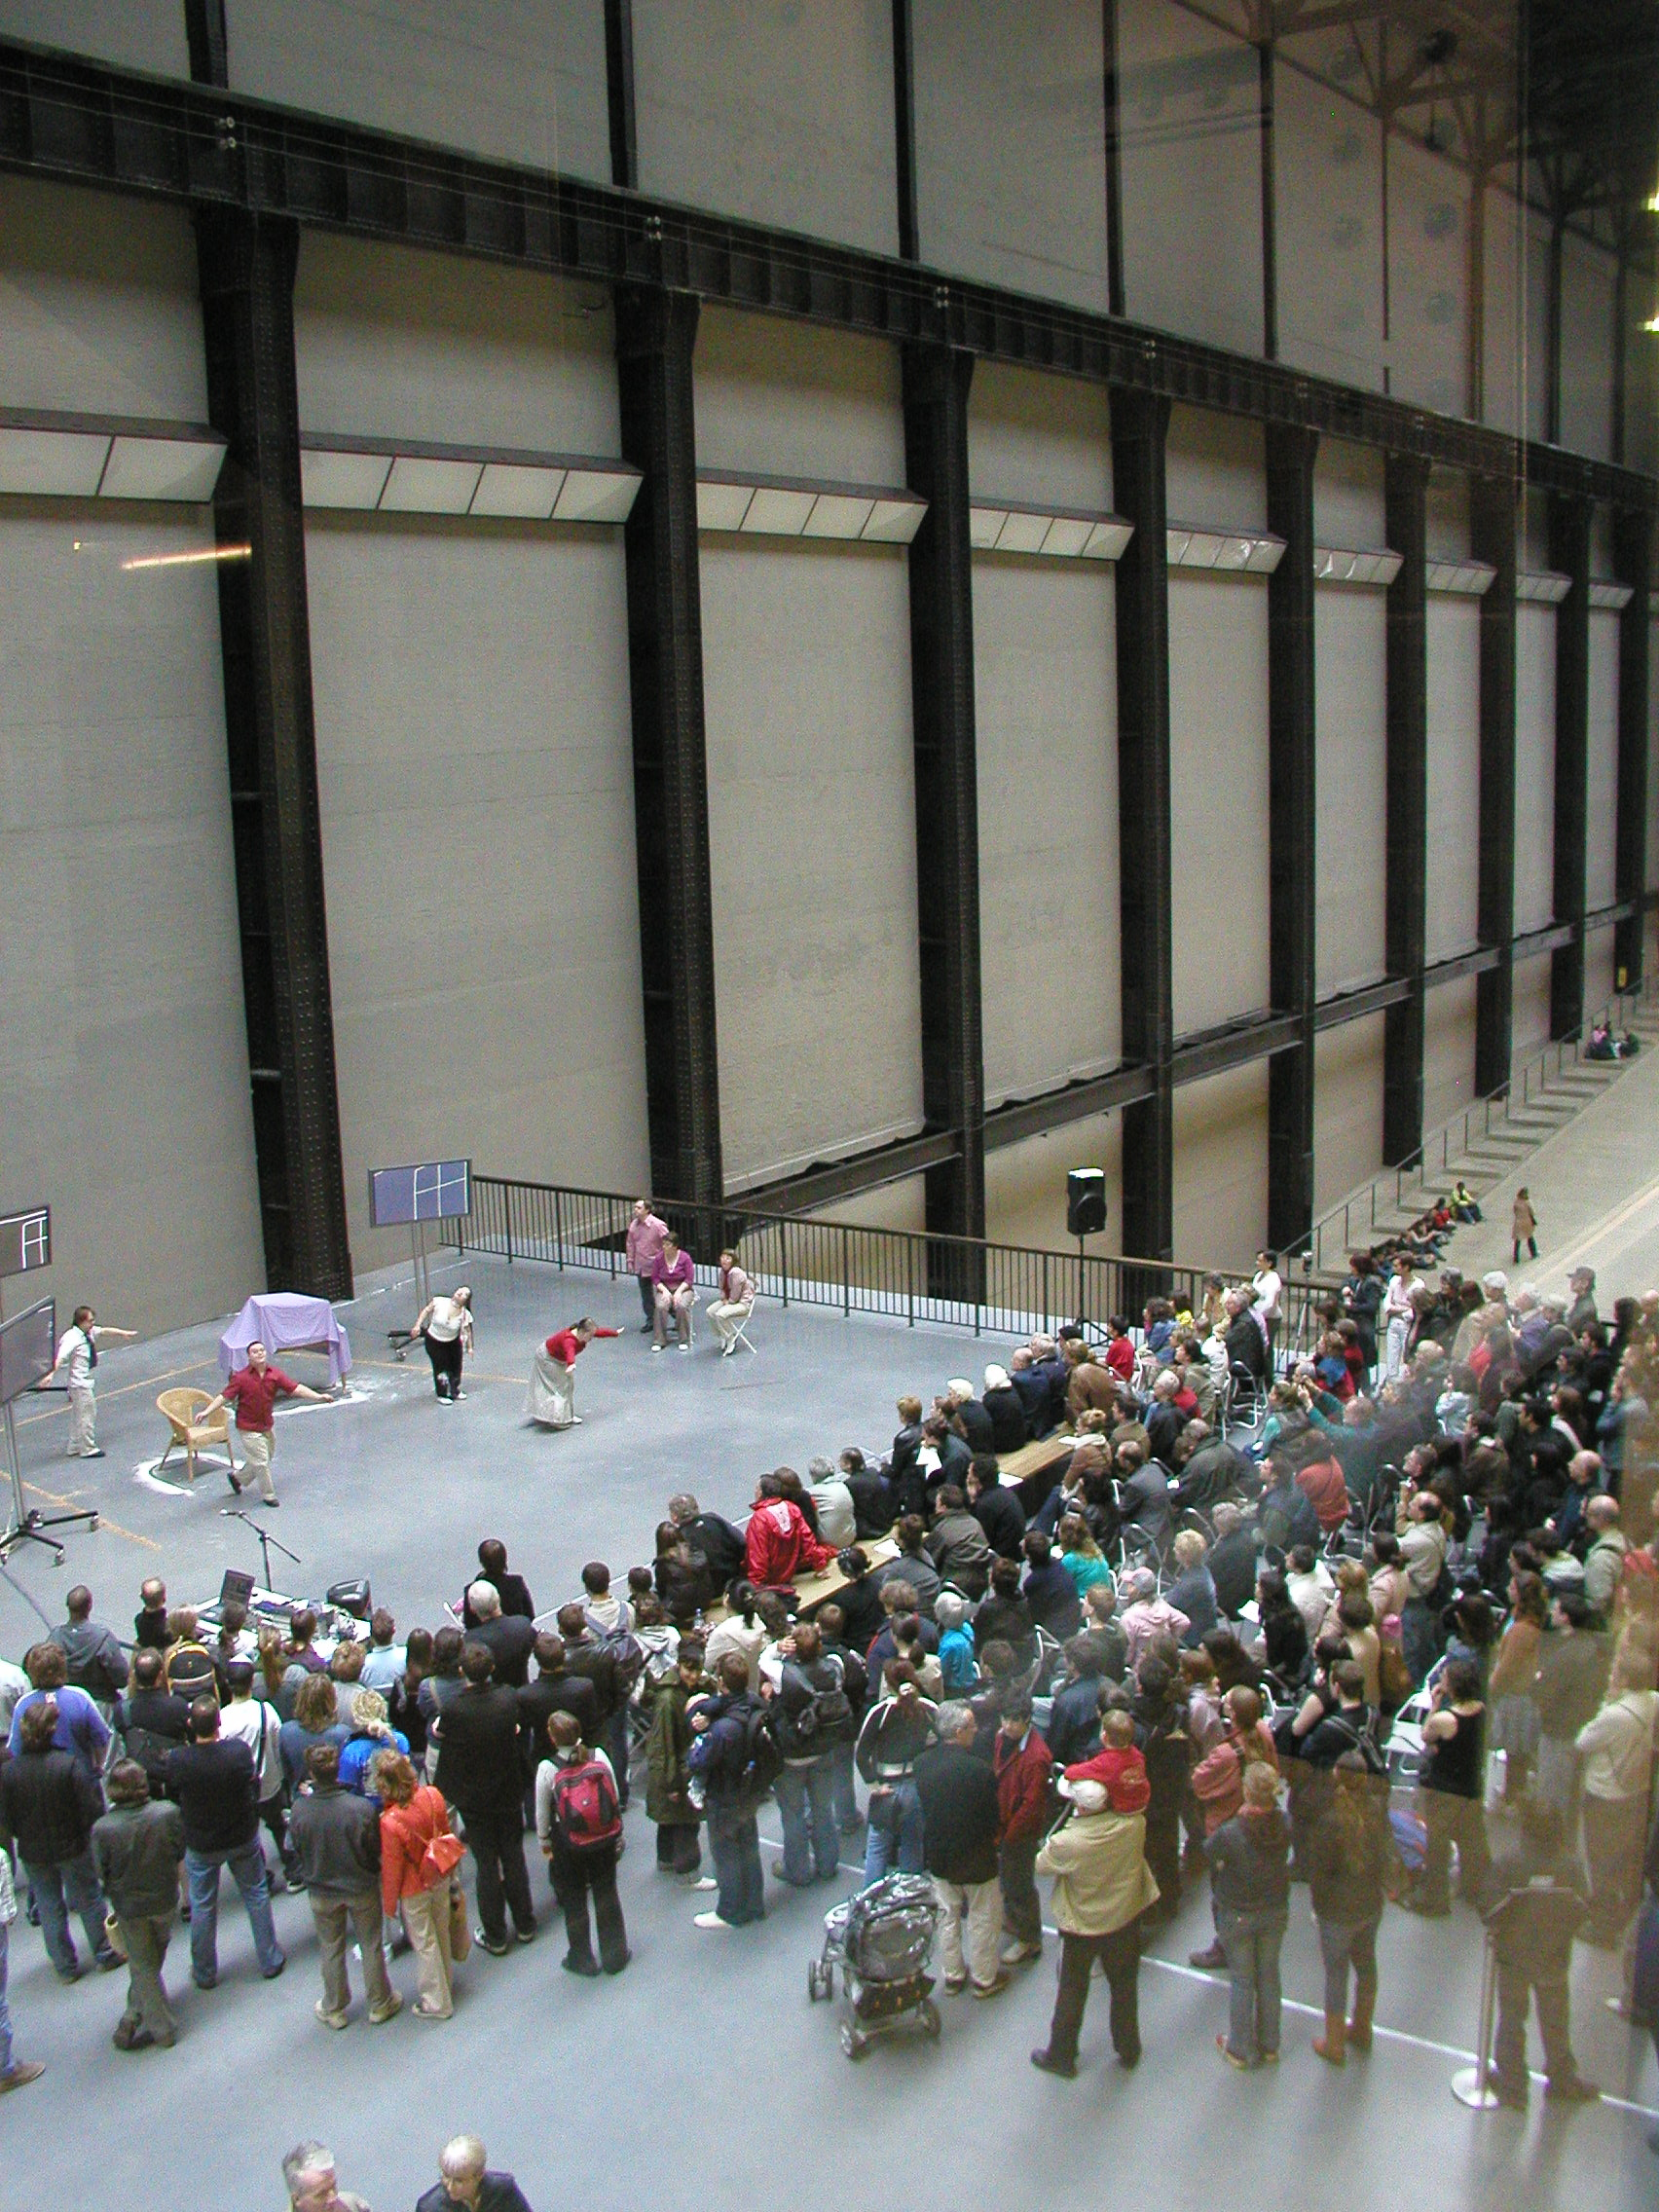 Kissed (2005) - Gantry Bridge, Tate Modern; Bonnie Bird Theatre, Trinity Laban